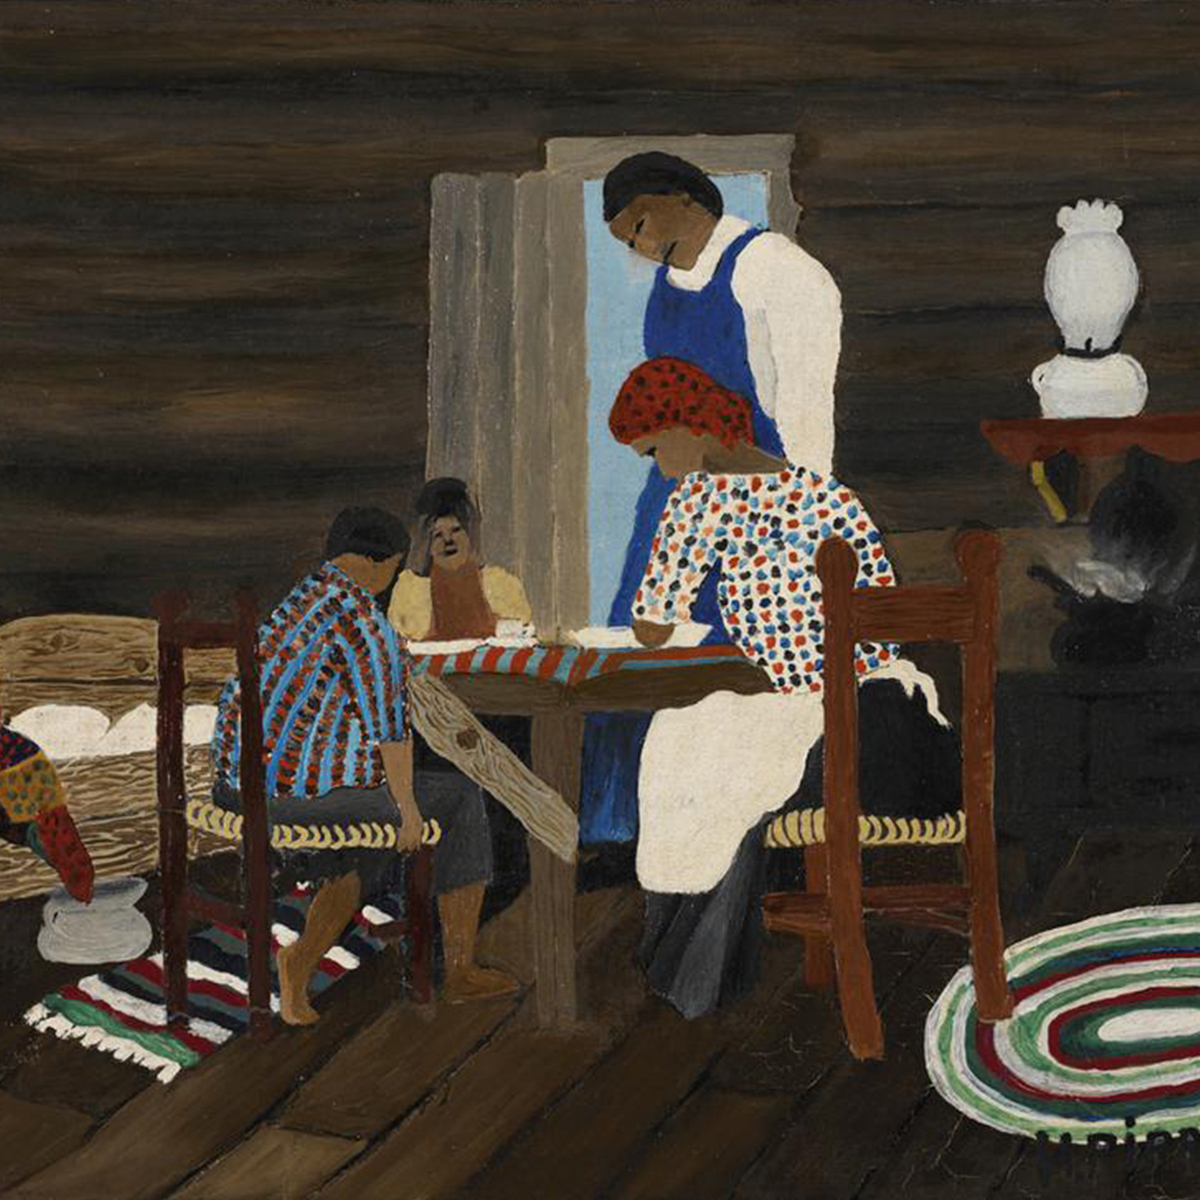 Horace Pippin. Giving Thanks, 1942.